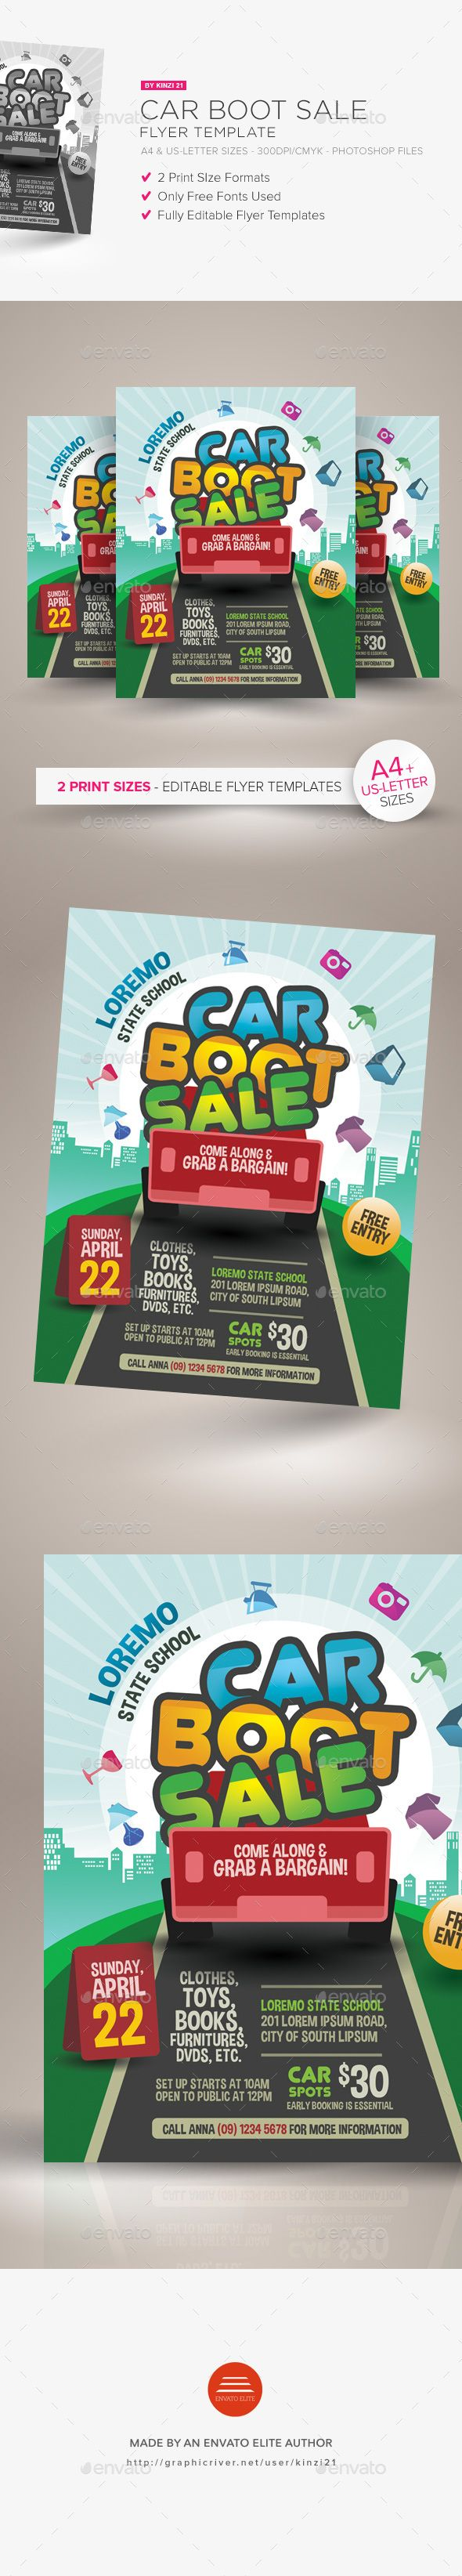 Car Boot Sale Flyer Template — Photoshop PSD #boot #yard • Download ➝ https://graphicriver.net/item/car-boot-sale-flyer-template/21204331?ref=pxcr